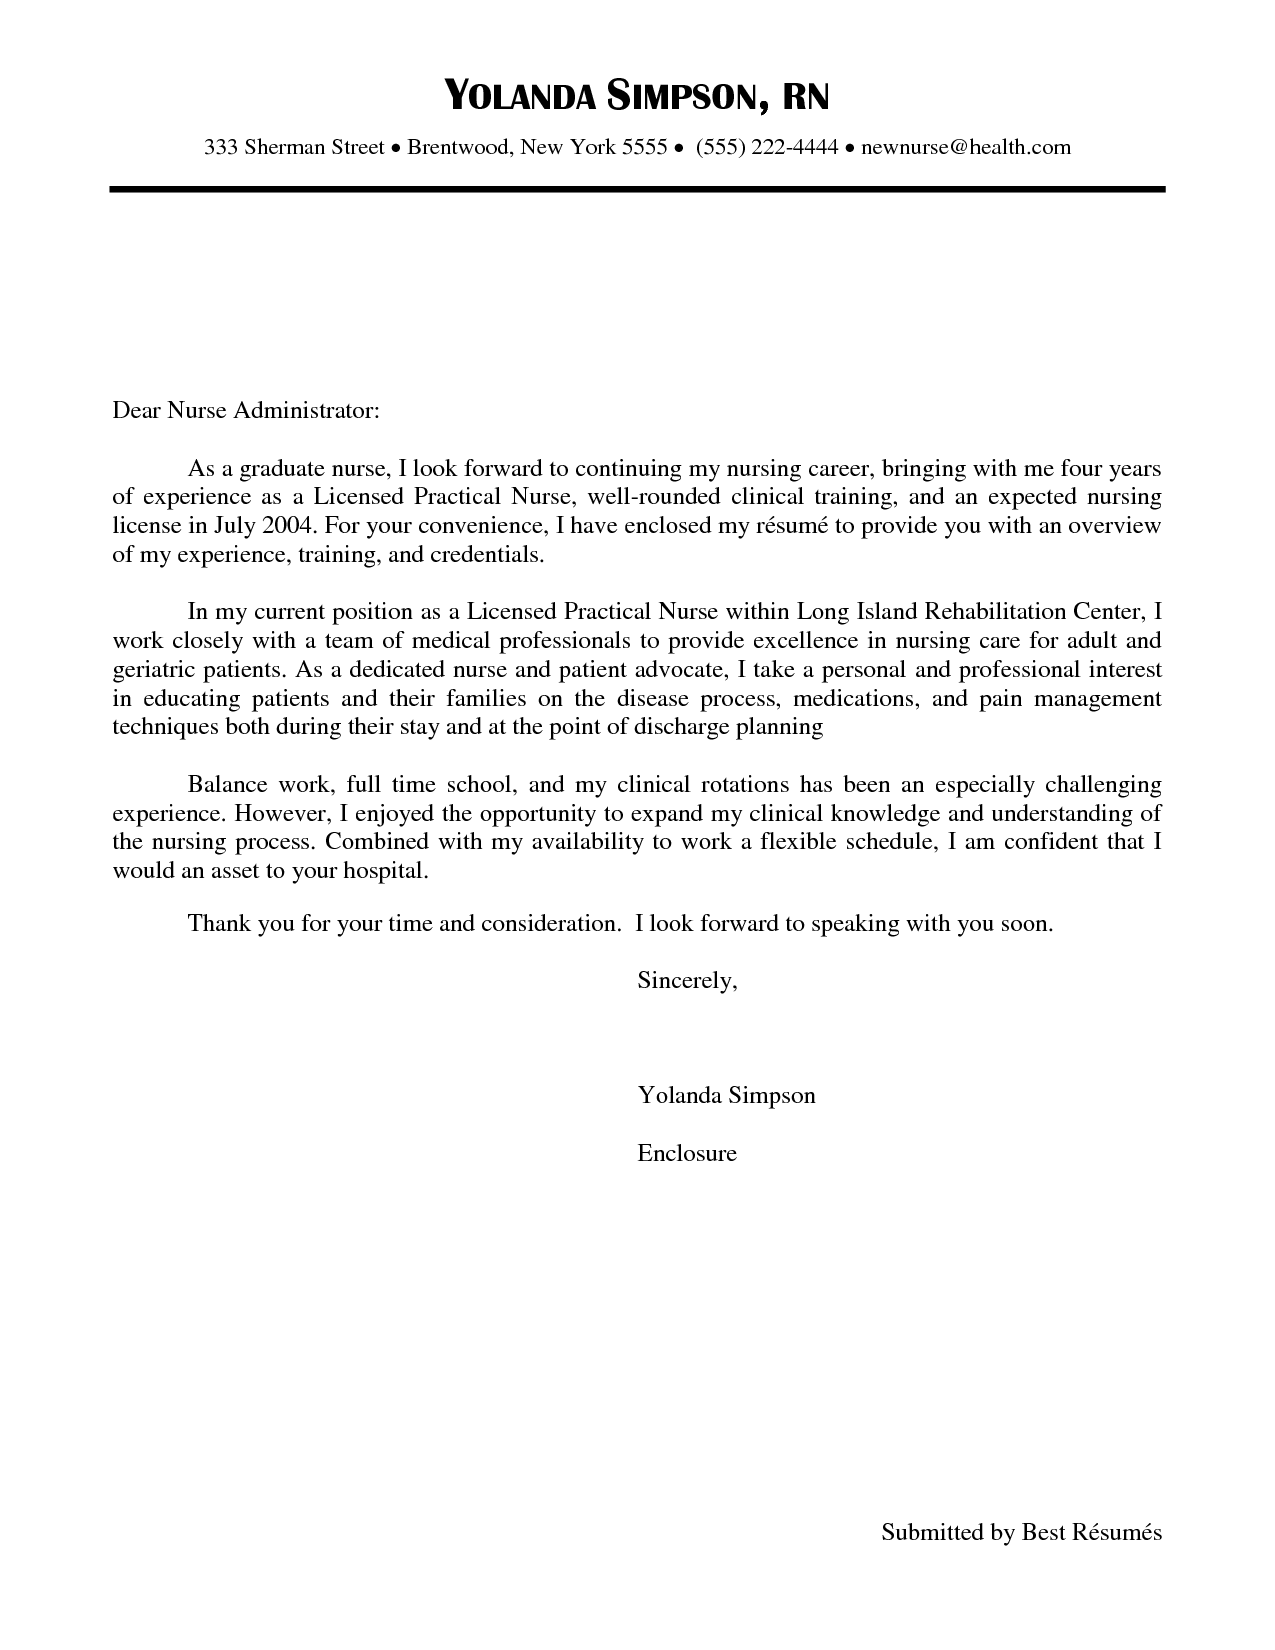 Cover Letter Template Nursing Graduate CoverLetterTemplate